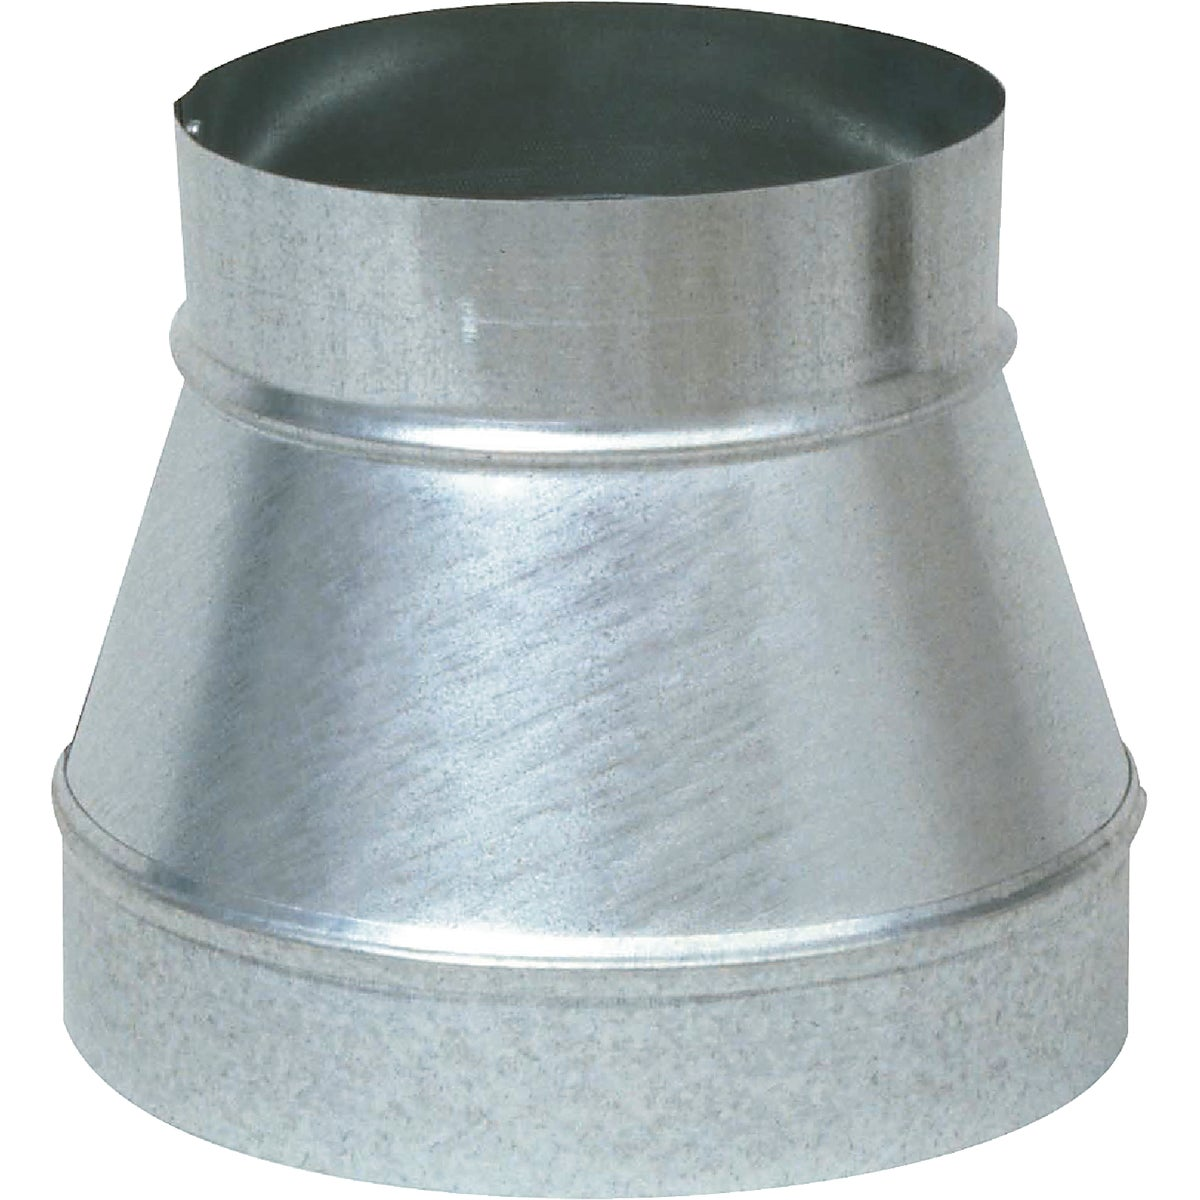 5-3 INCREASER/REDUCER - GV0780 by Imperial Mfg Group